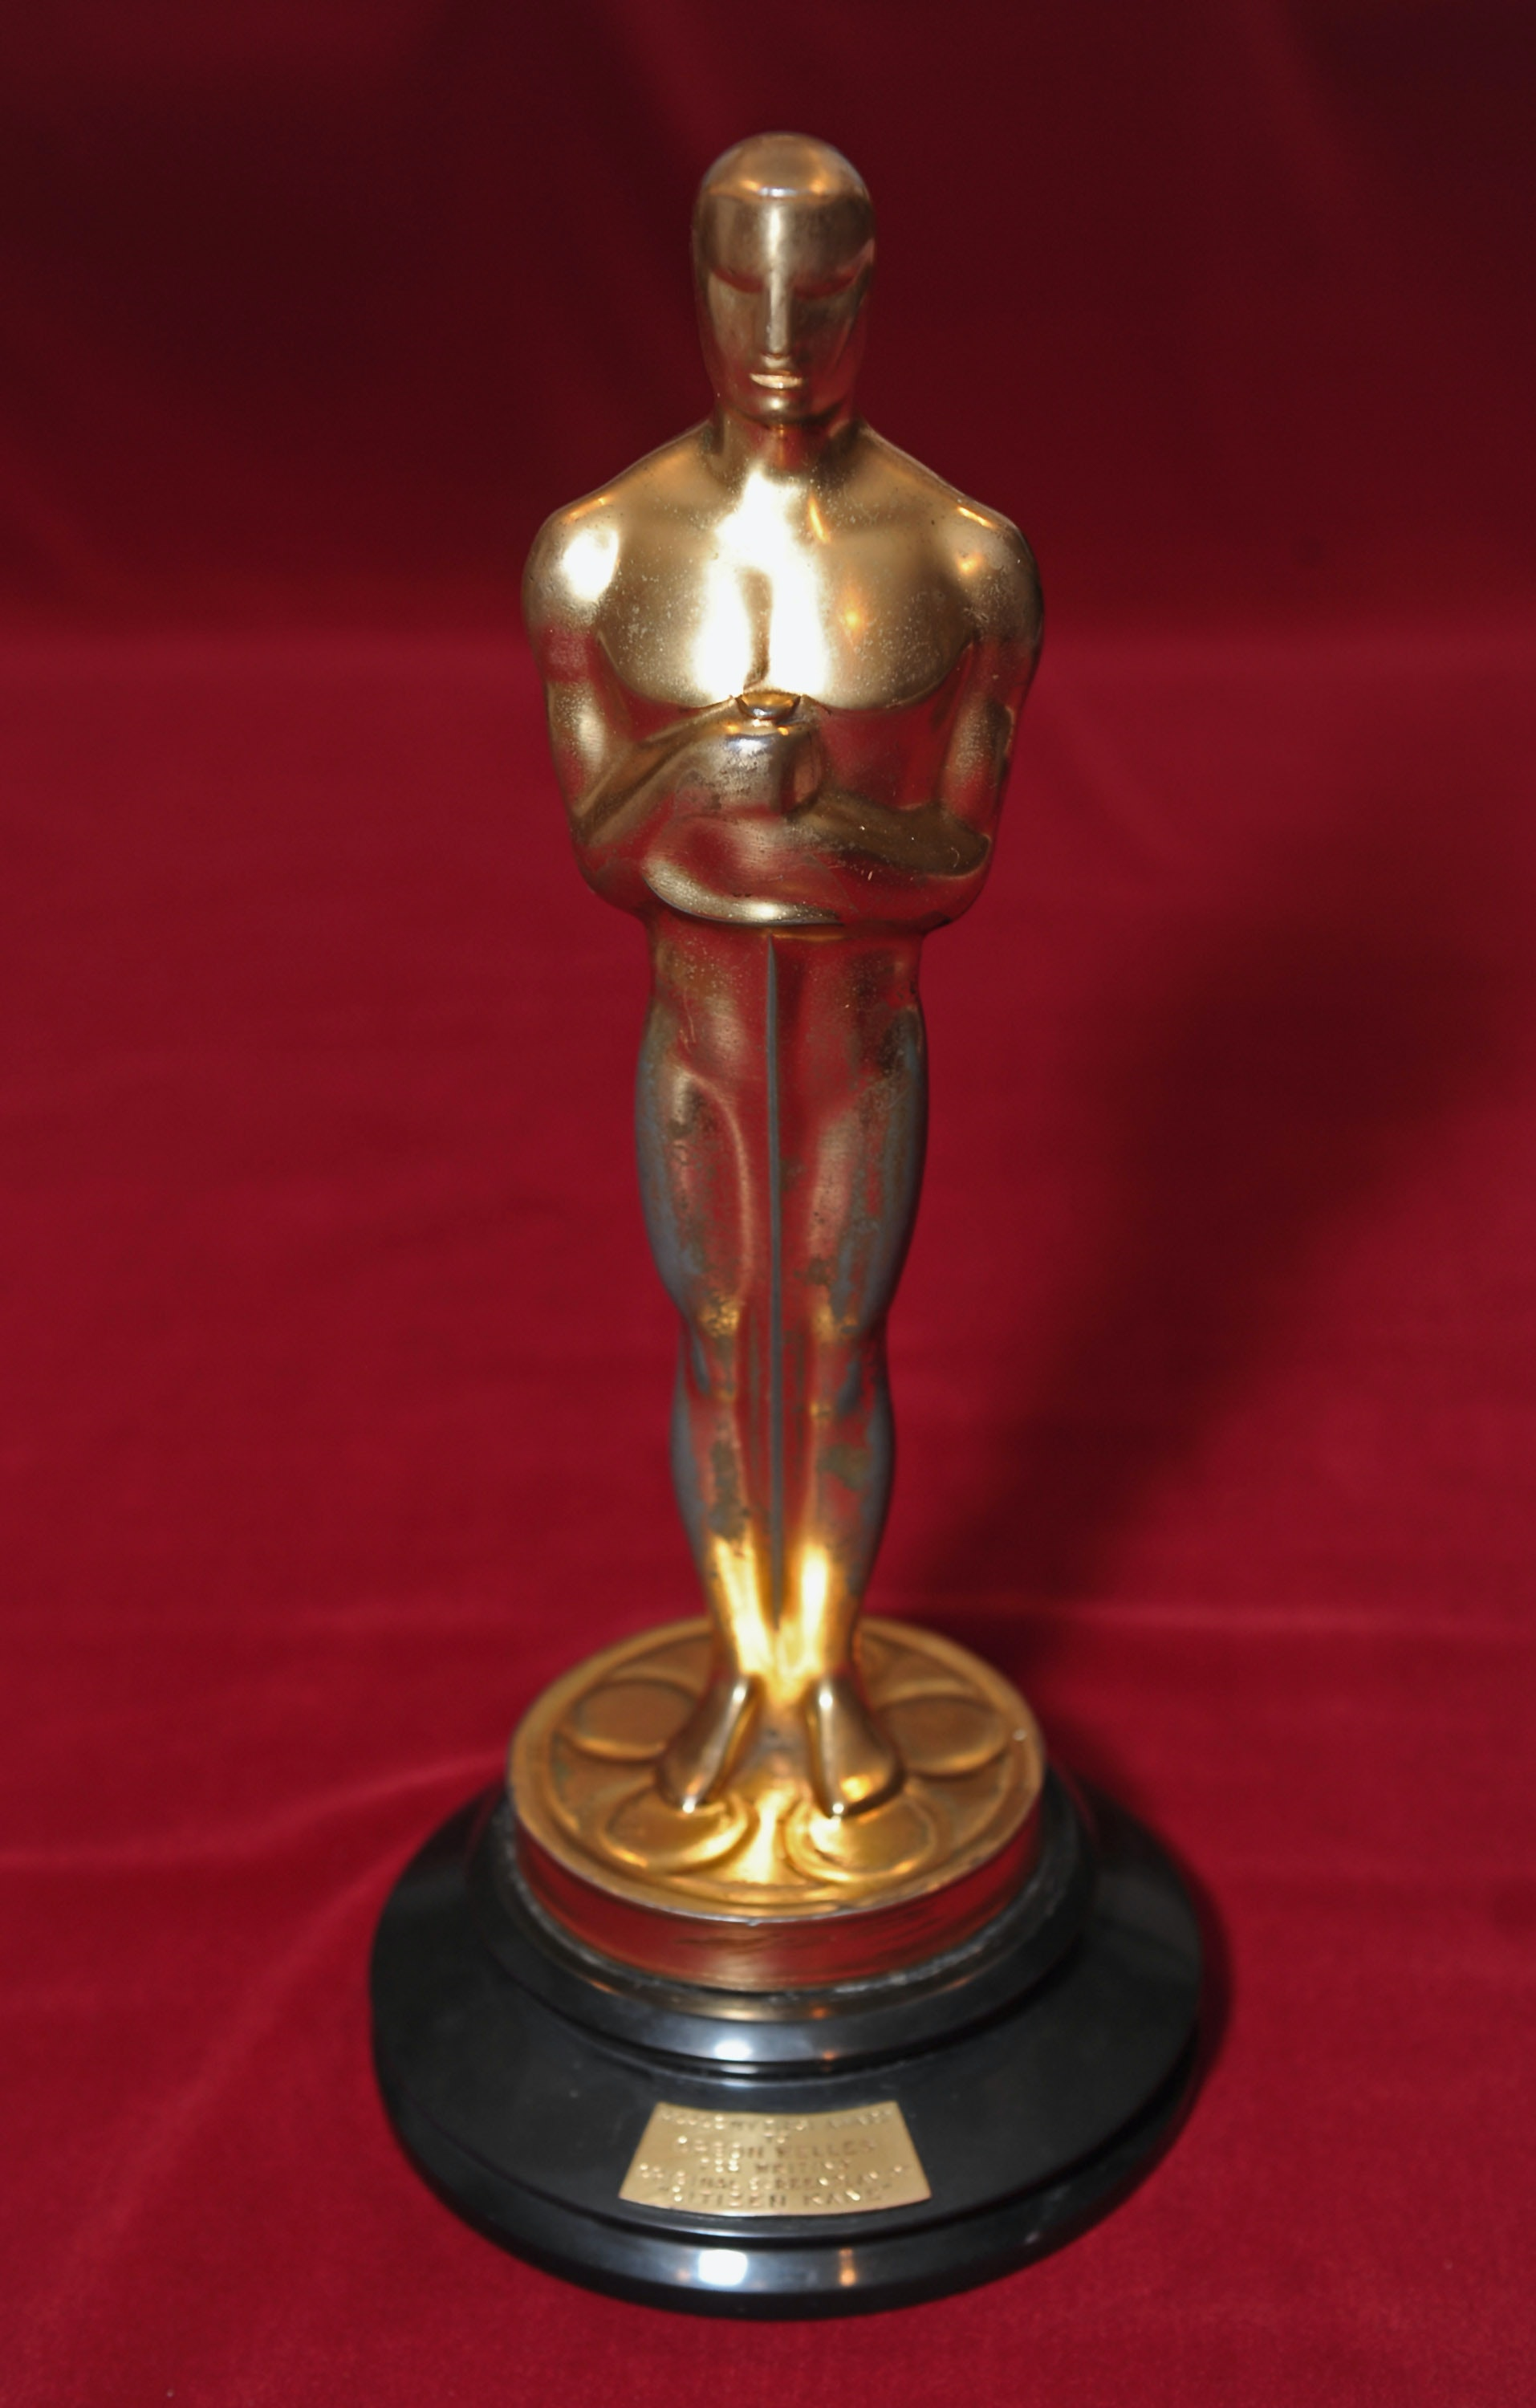 How much is an Academy Award really worth? Here's the value